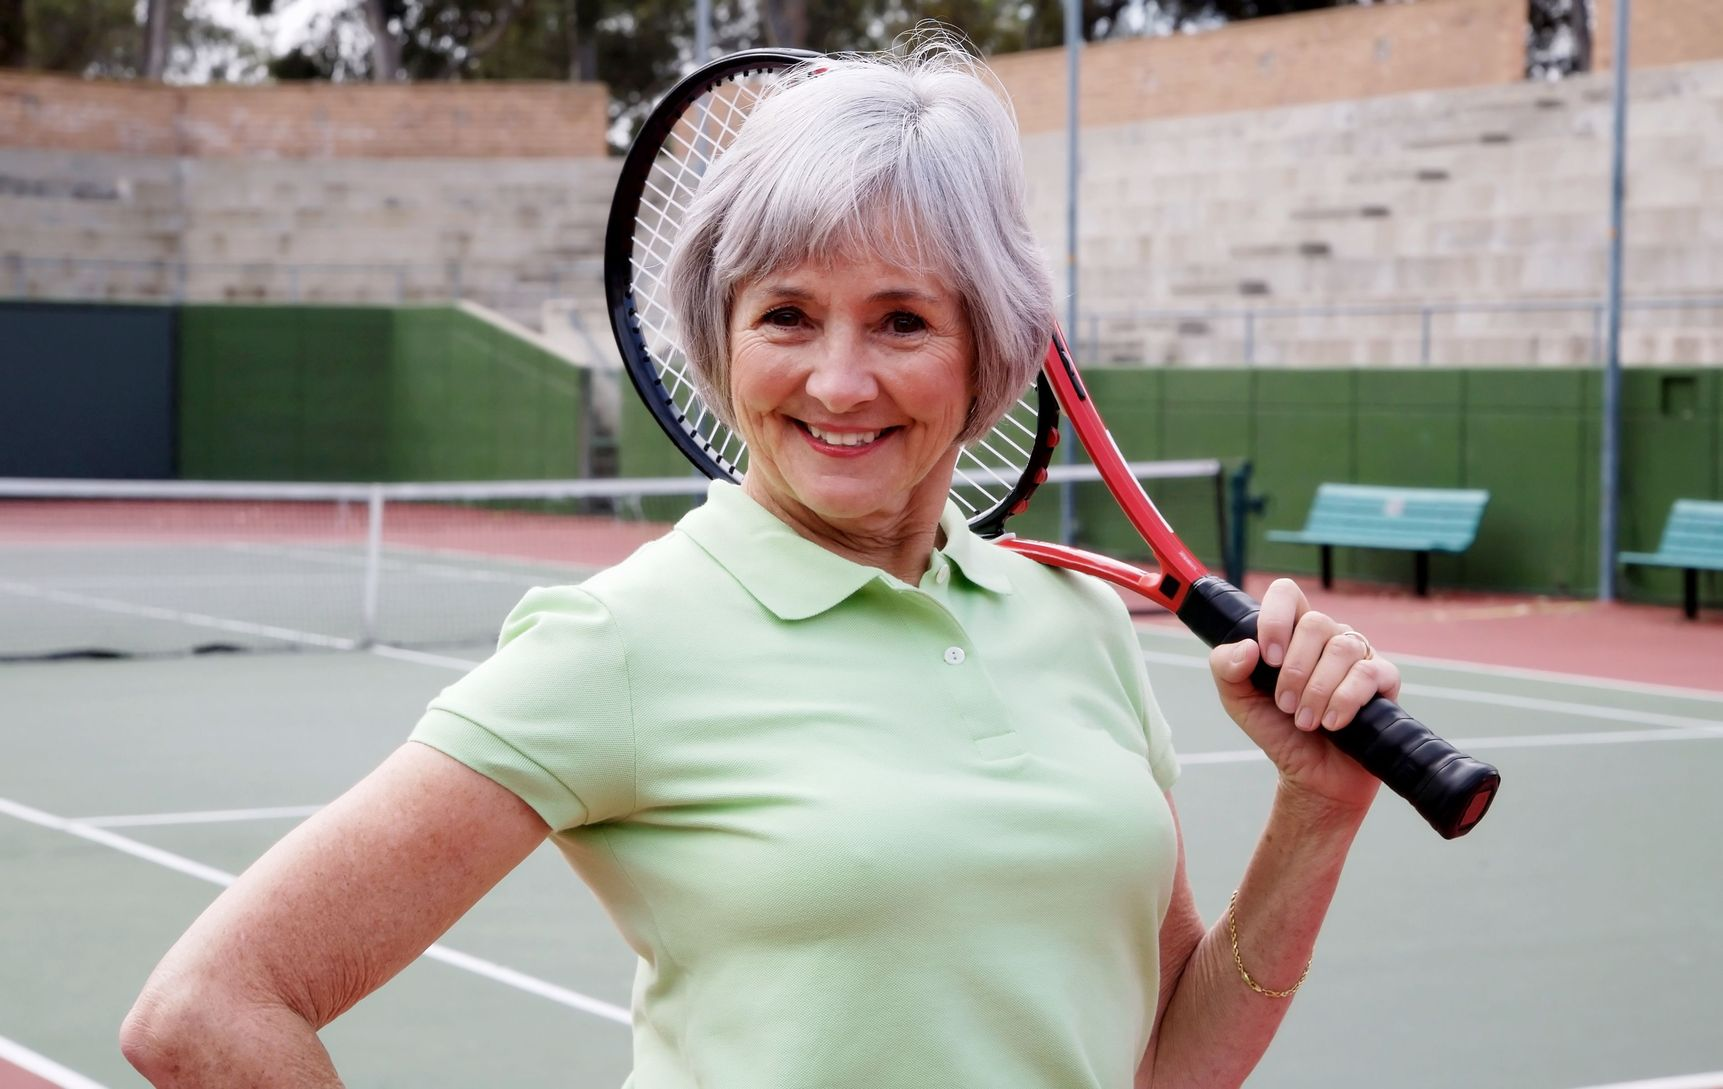 elderly woman with tennis racket